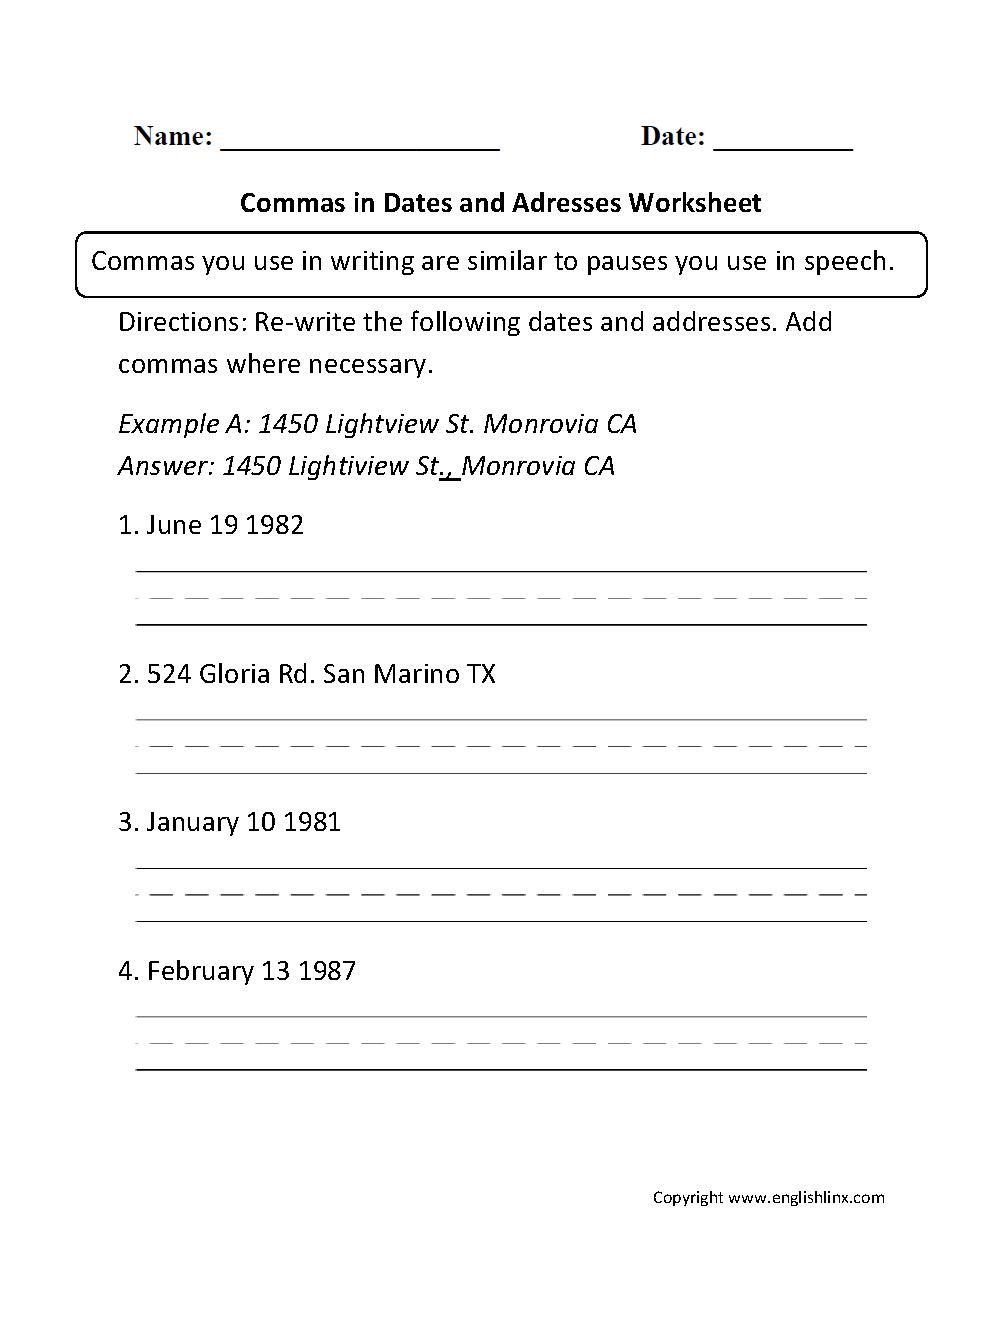 Commas in Dates and Addresses Worksheet